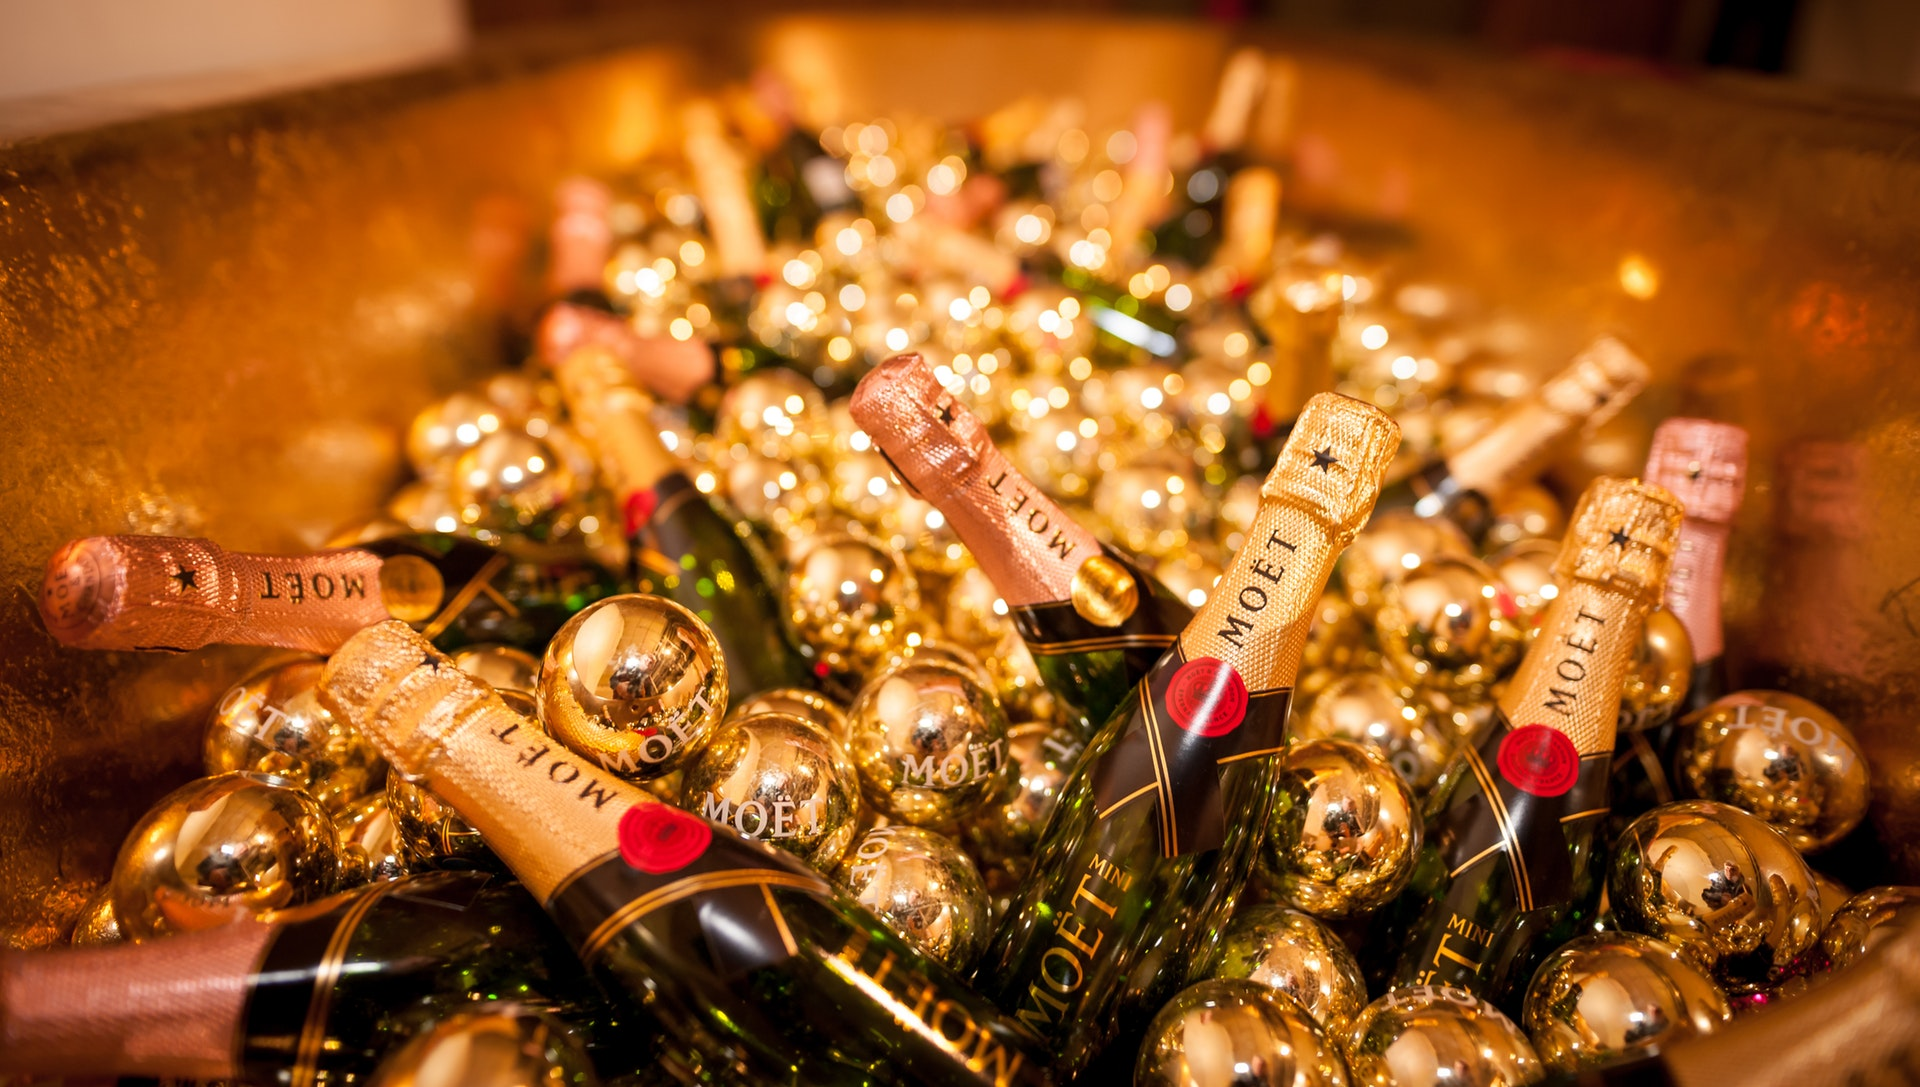 10 Most Popular Champagne Brands Internationally – Most Are Delicious